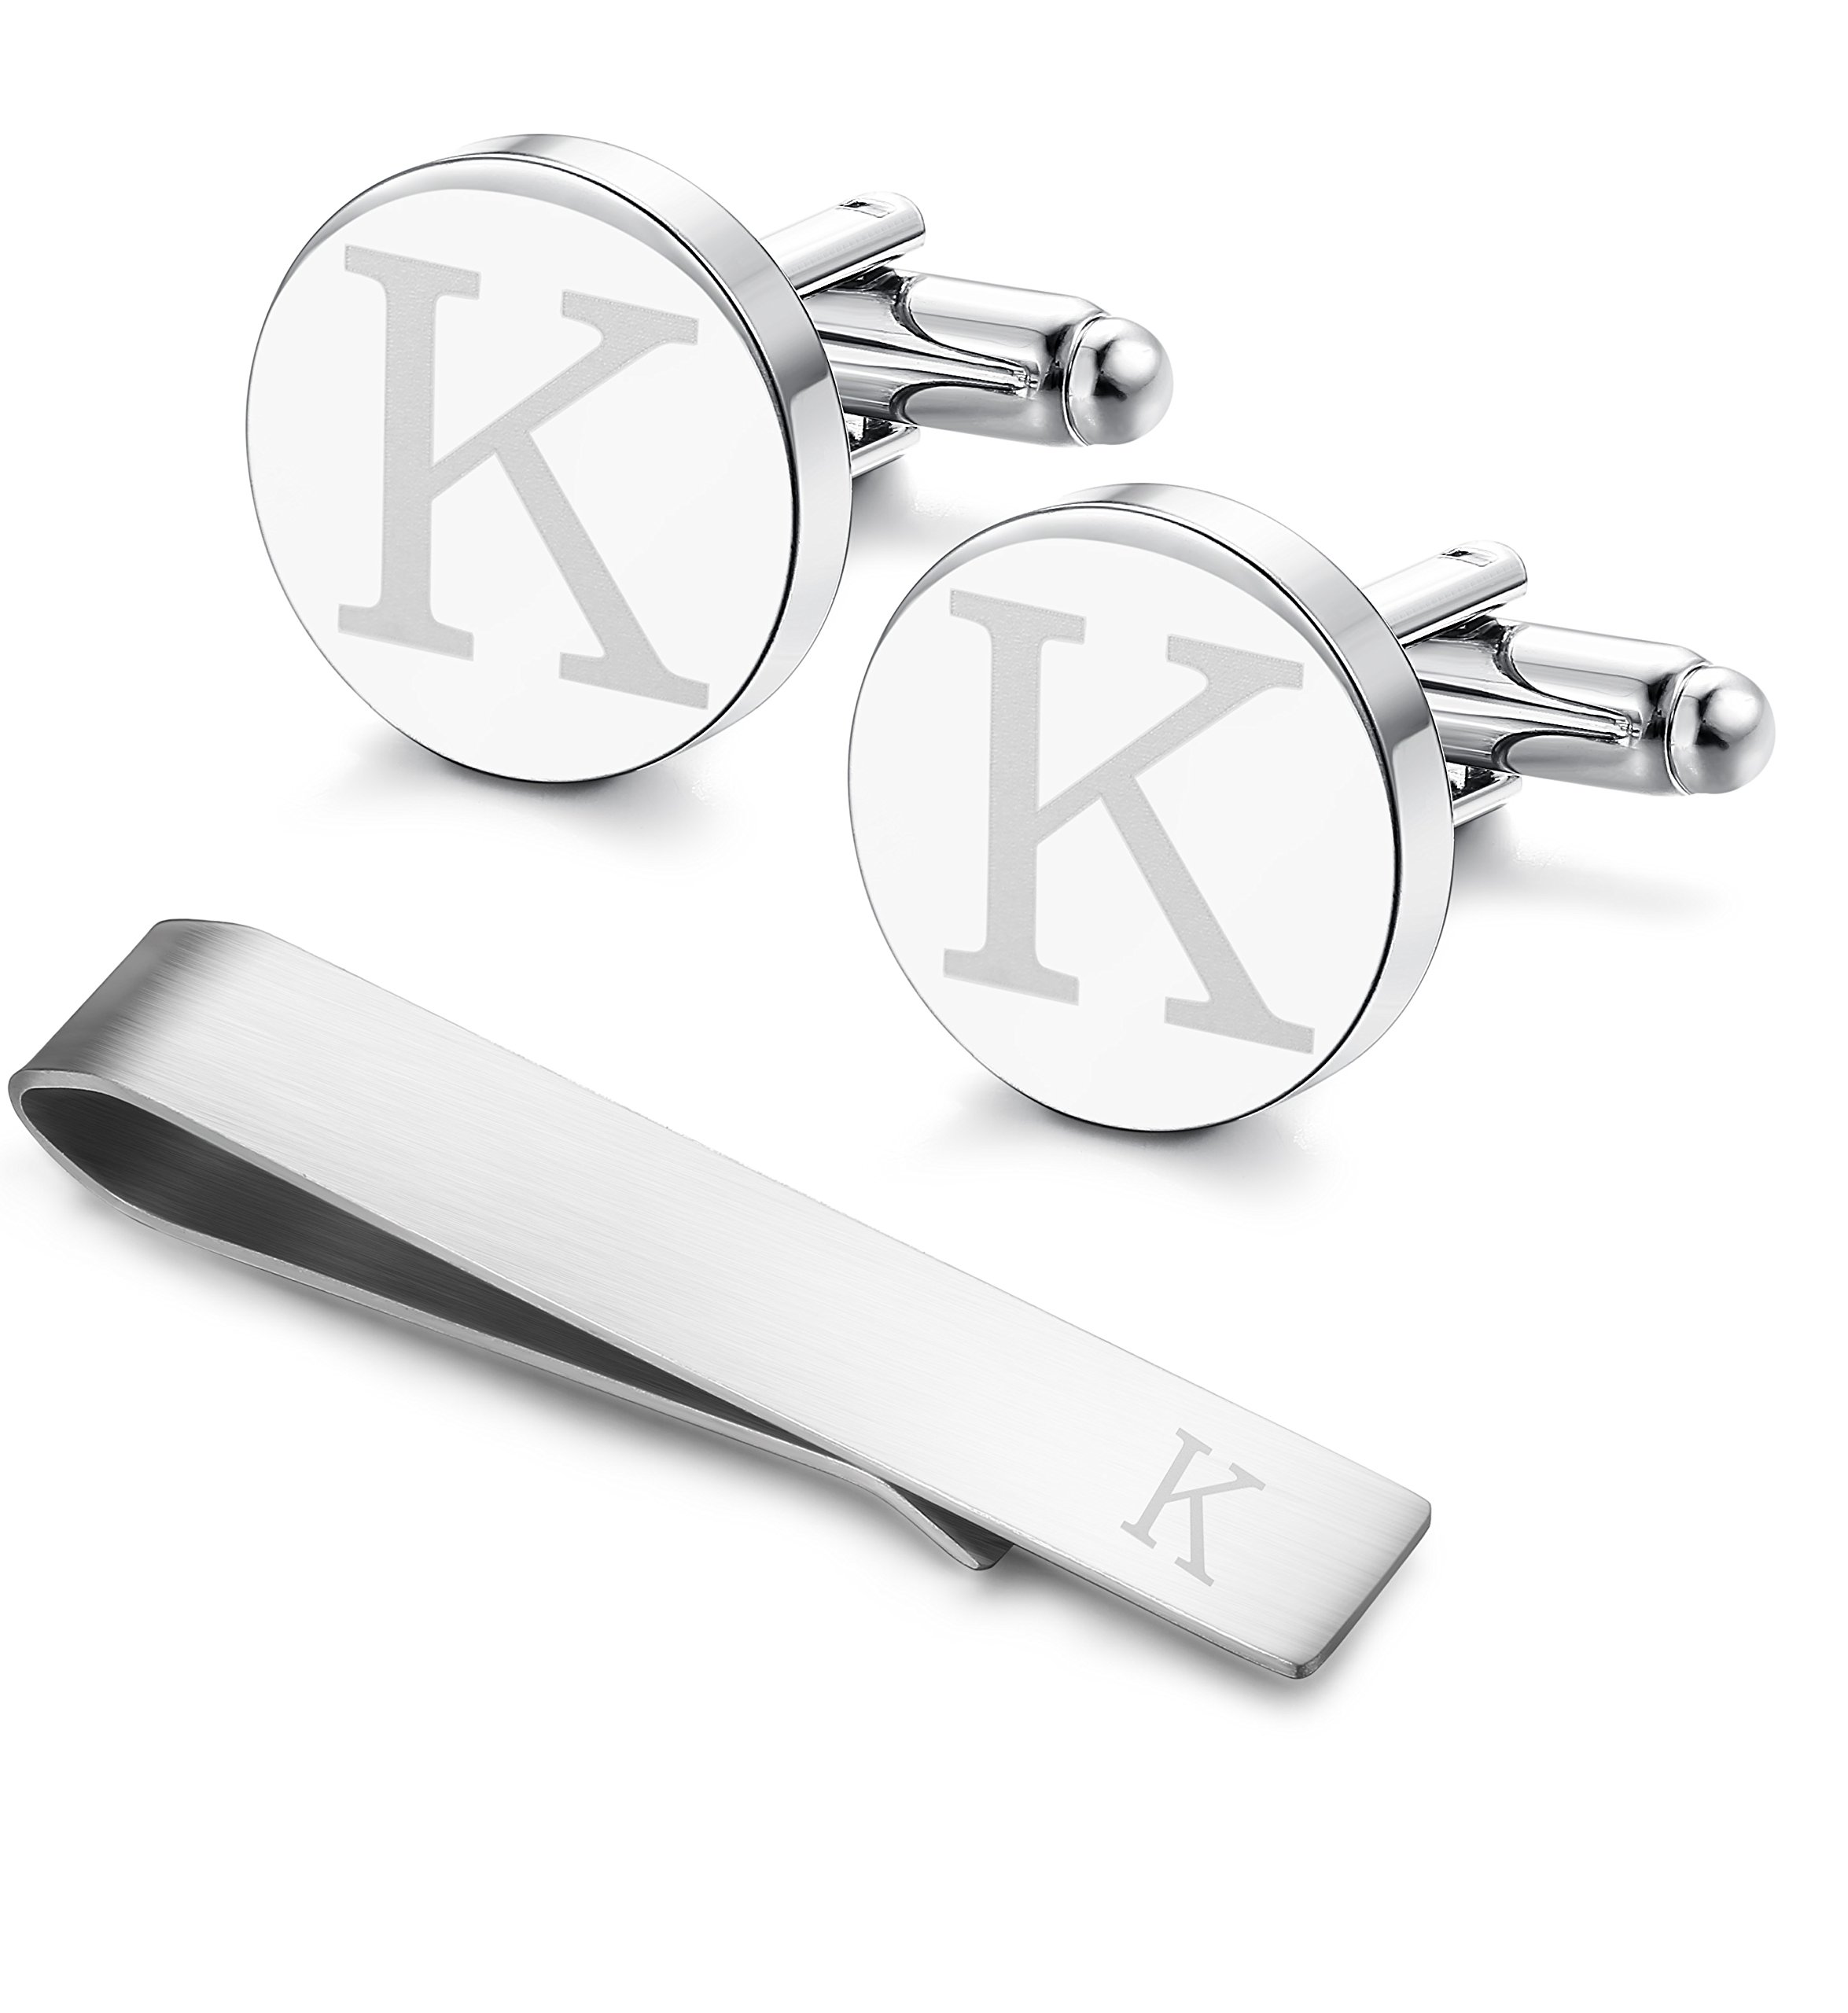 Classic Engraved Initial Cufflinks and Tie Clip Bar Set Alphabet Letter Formal Business Wedding Shirts K